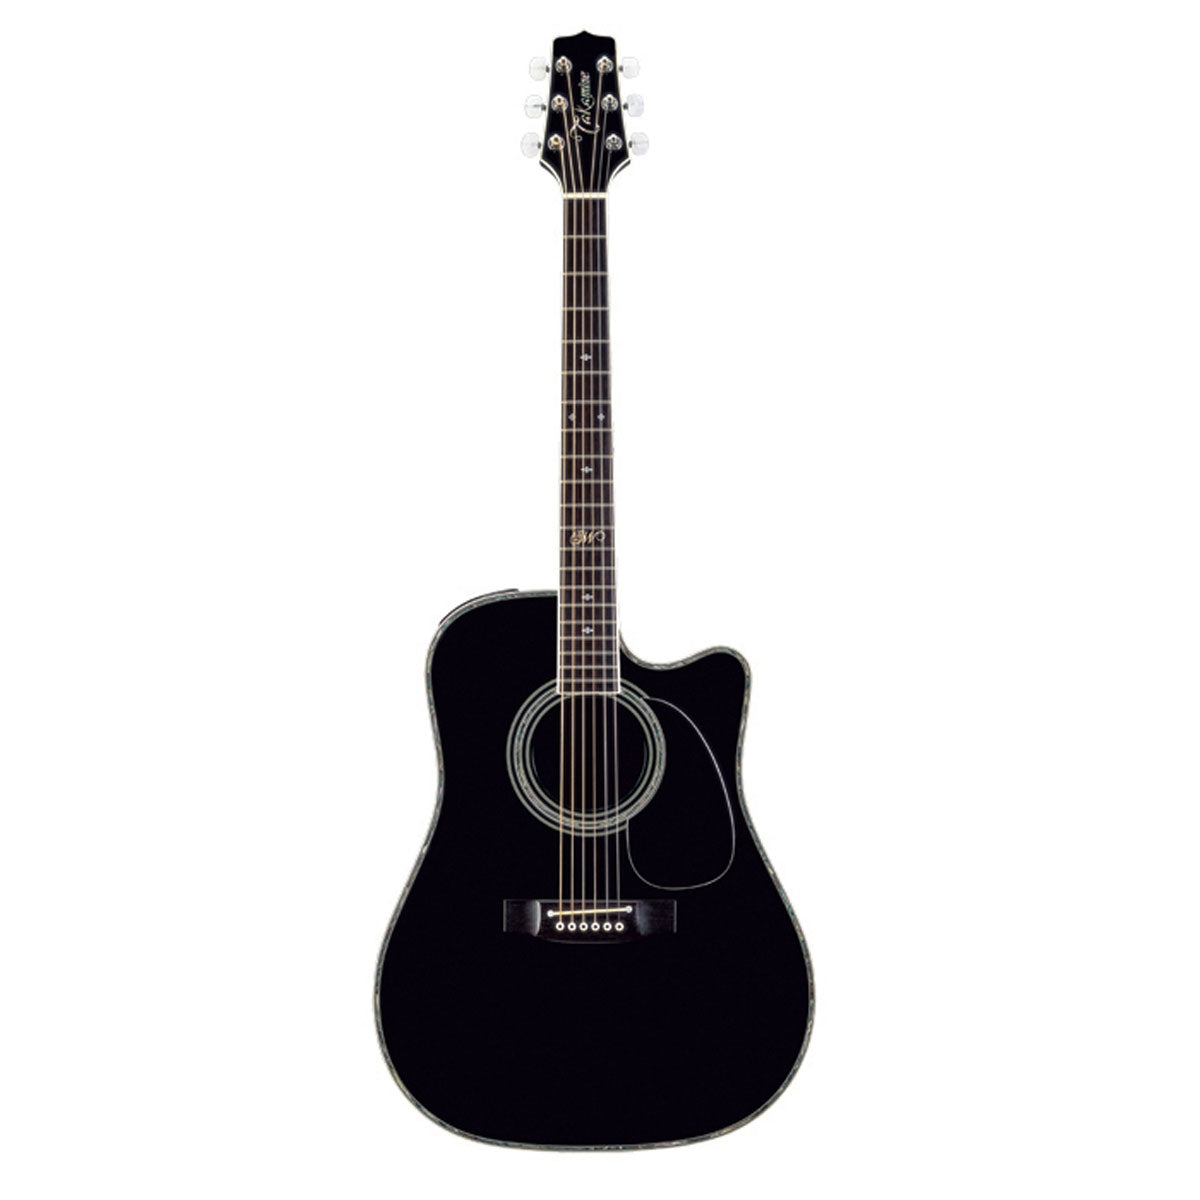 Takamine SW341SC Steve Wariner Signature Acoustic Guitar Dreadnought Black w/ Pickup